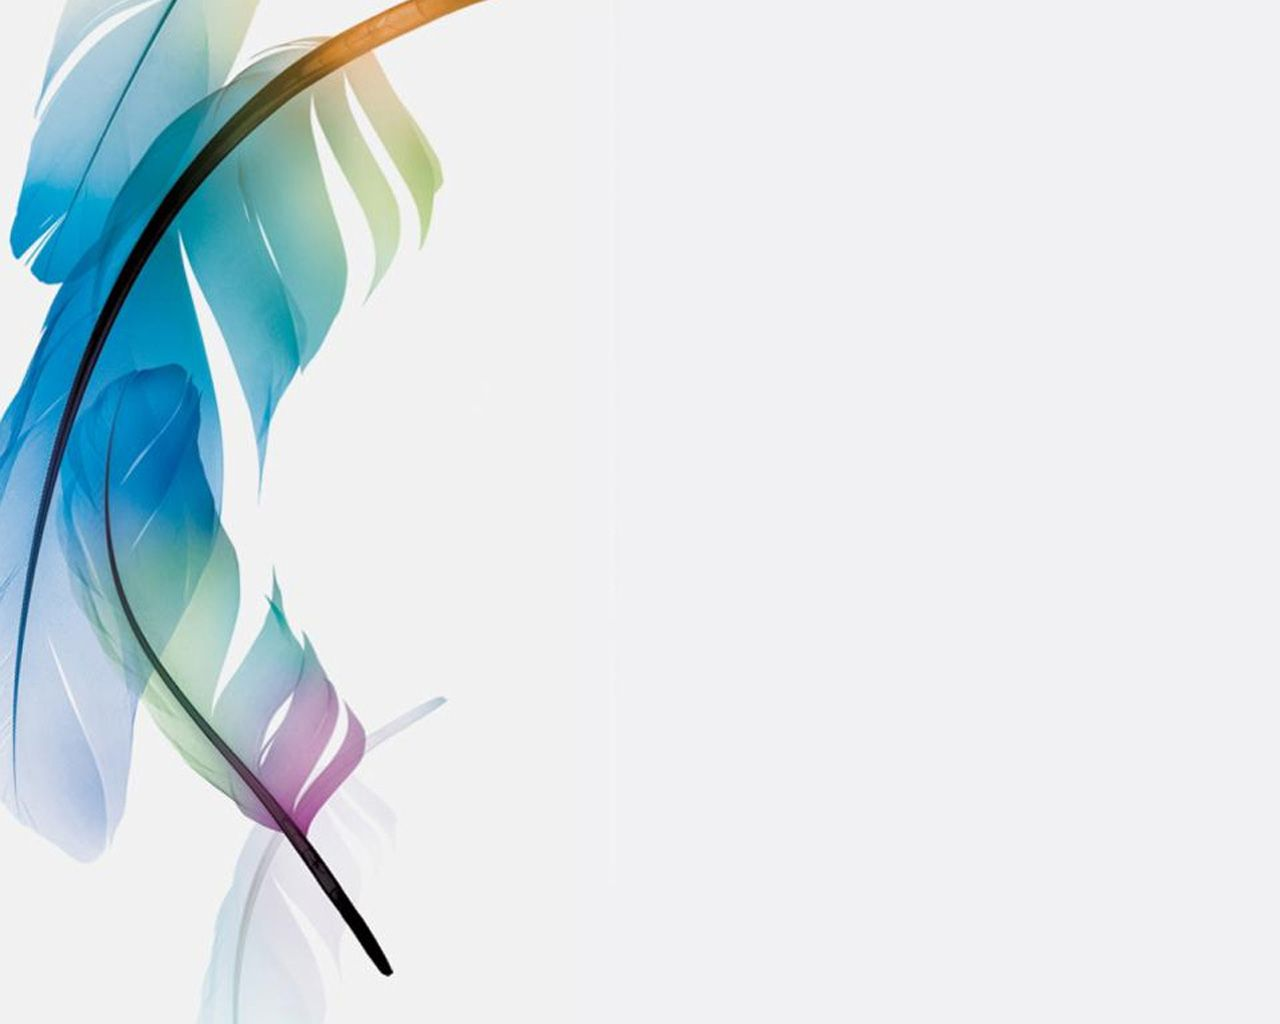 Adobe Creative Suite Ppt Backgrounds For Microsoft Powerpoint Free Photoshop Photoshop Adobe Photoshop